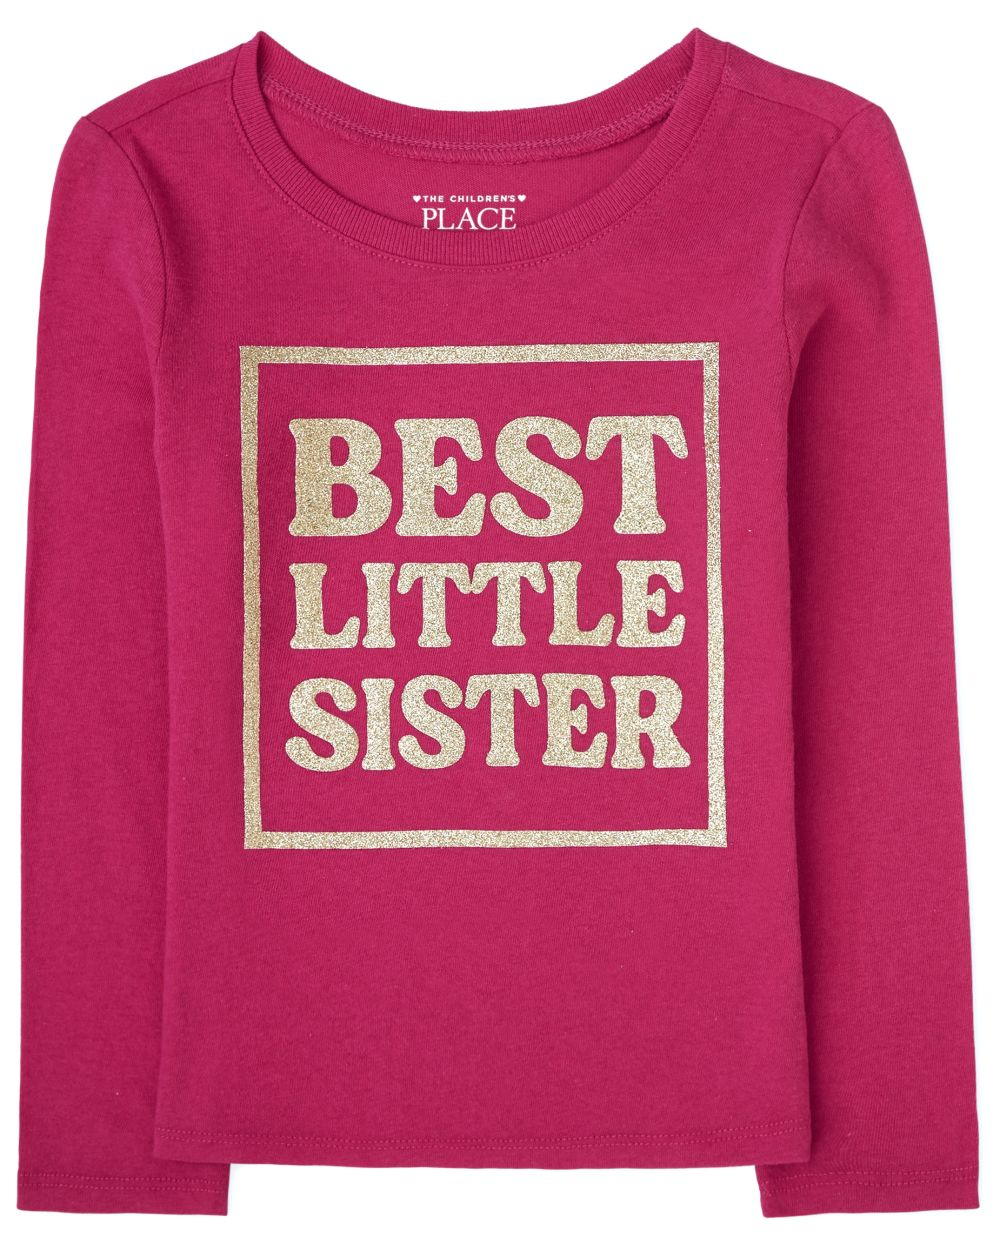 Baby And Toddler Girls Little Sister Graphic Tee